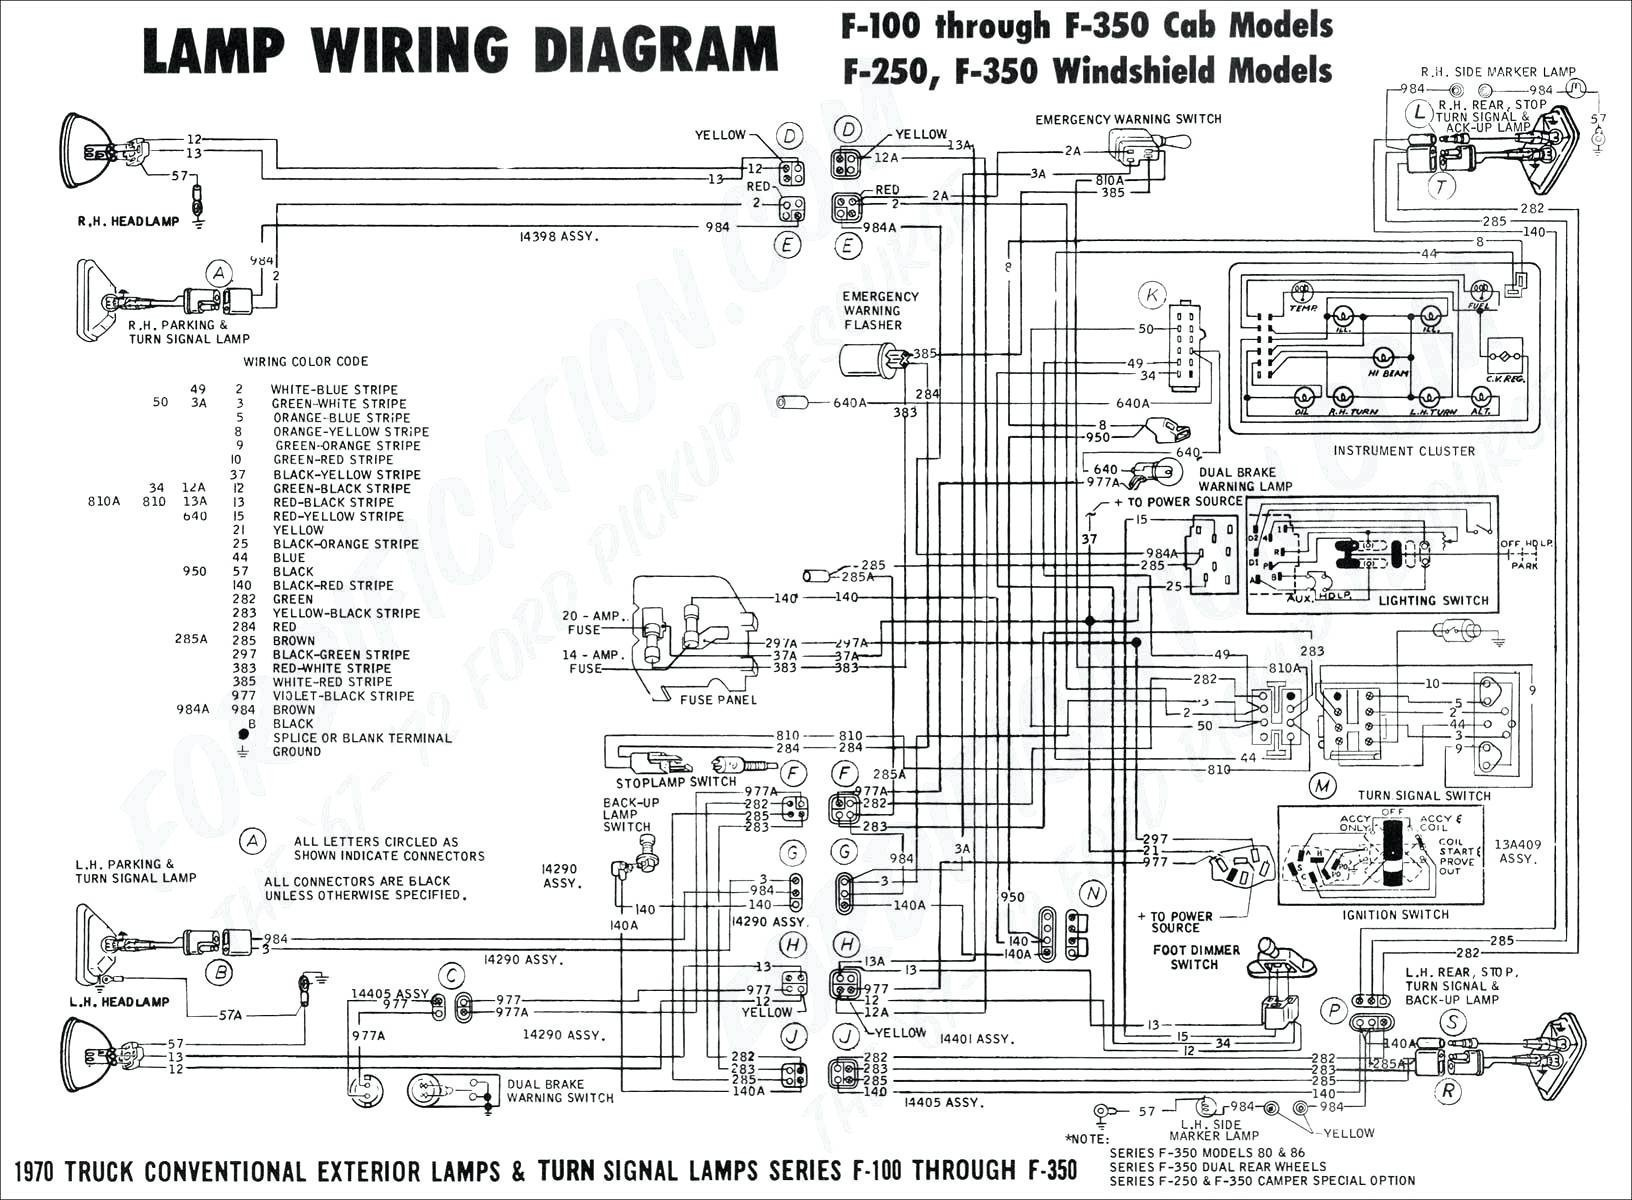 1999 Kia Sephia Engine Diagram 1998 Nissan Maxima Radio